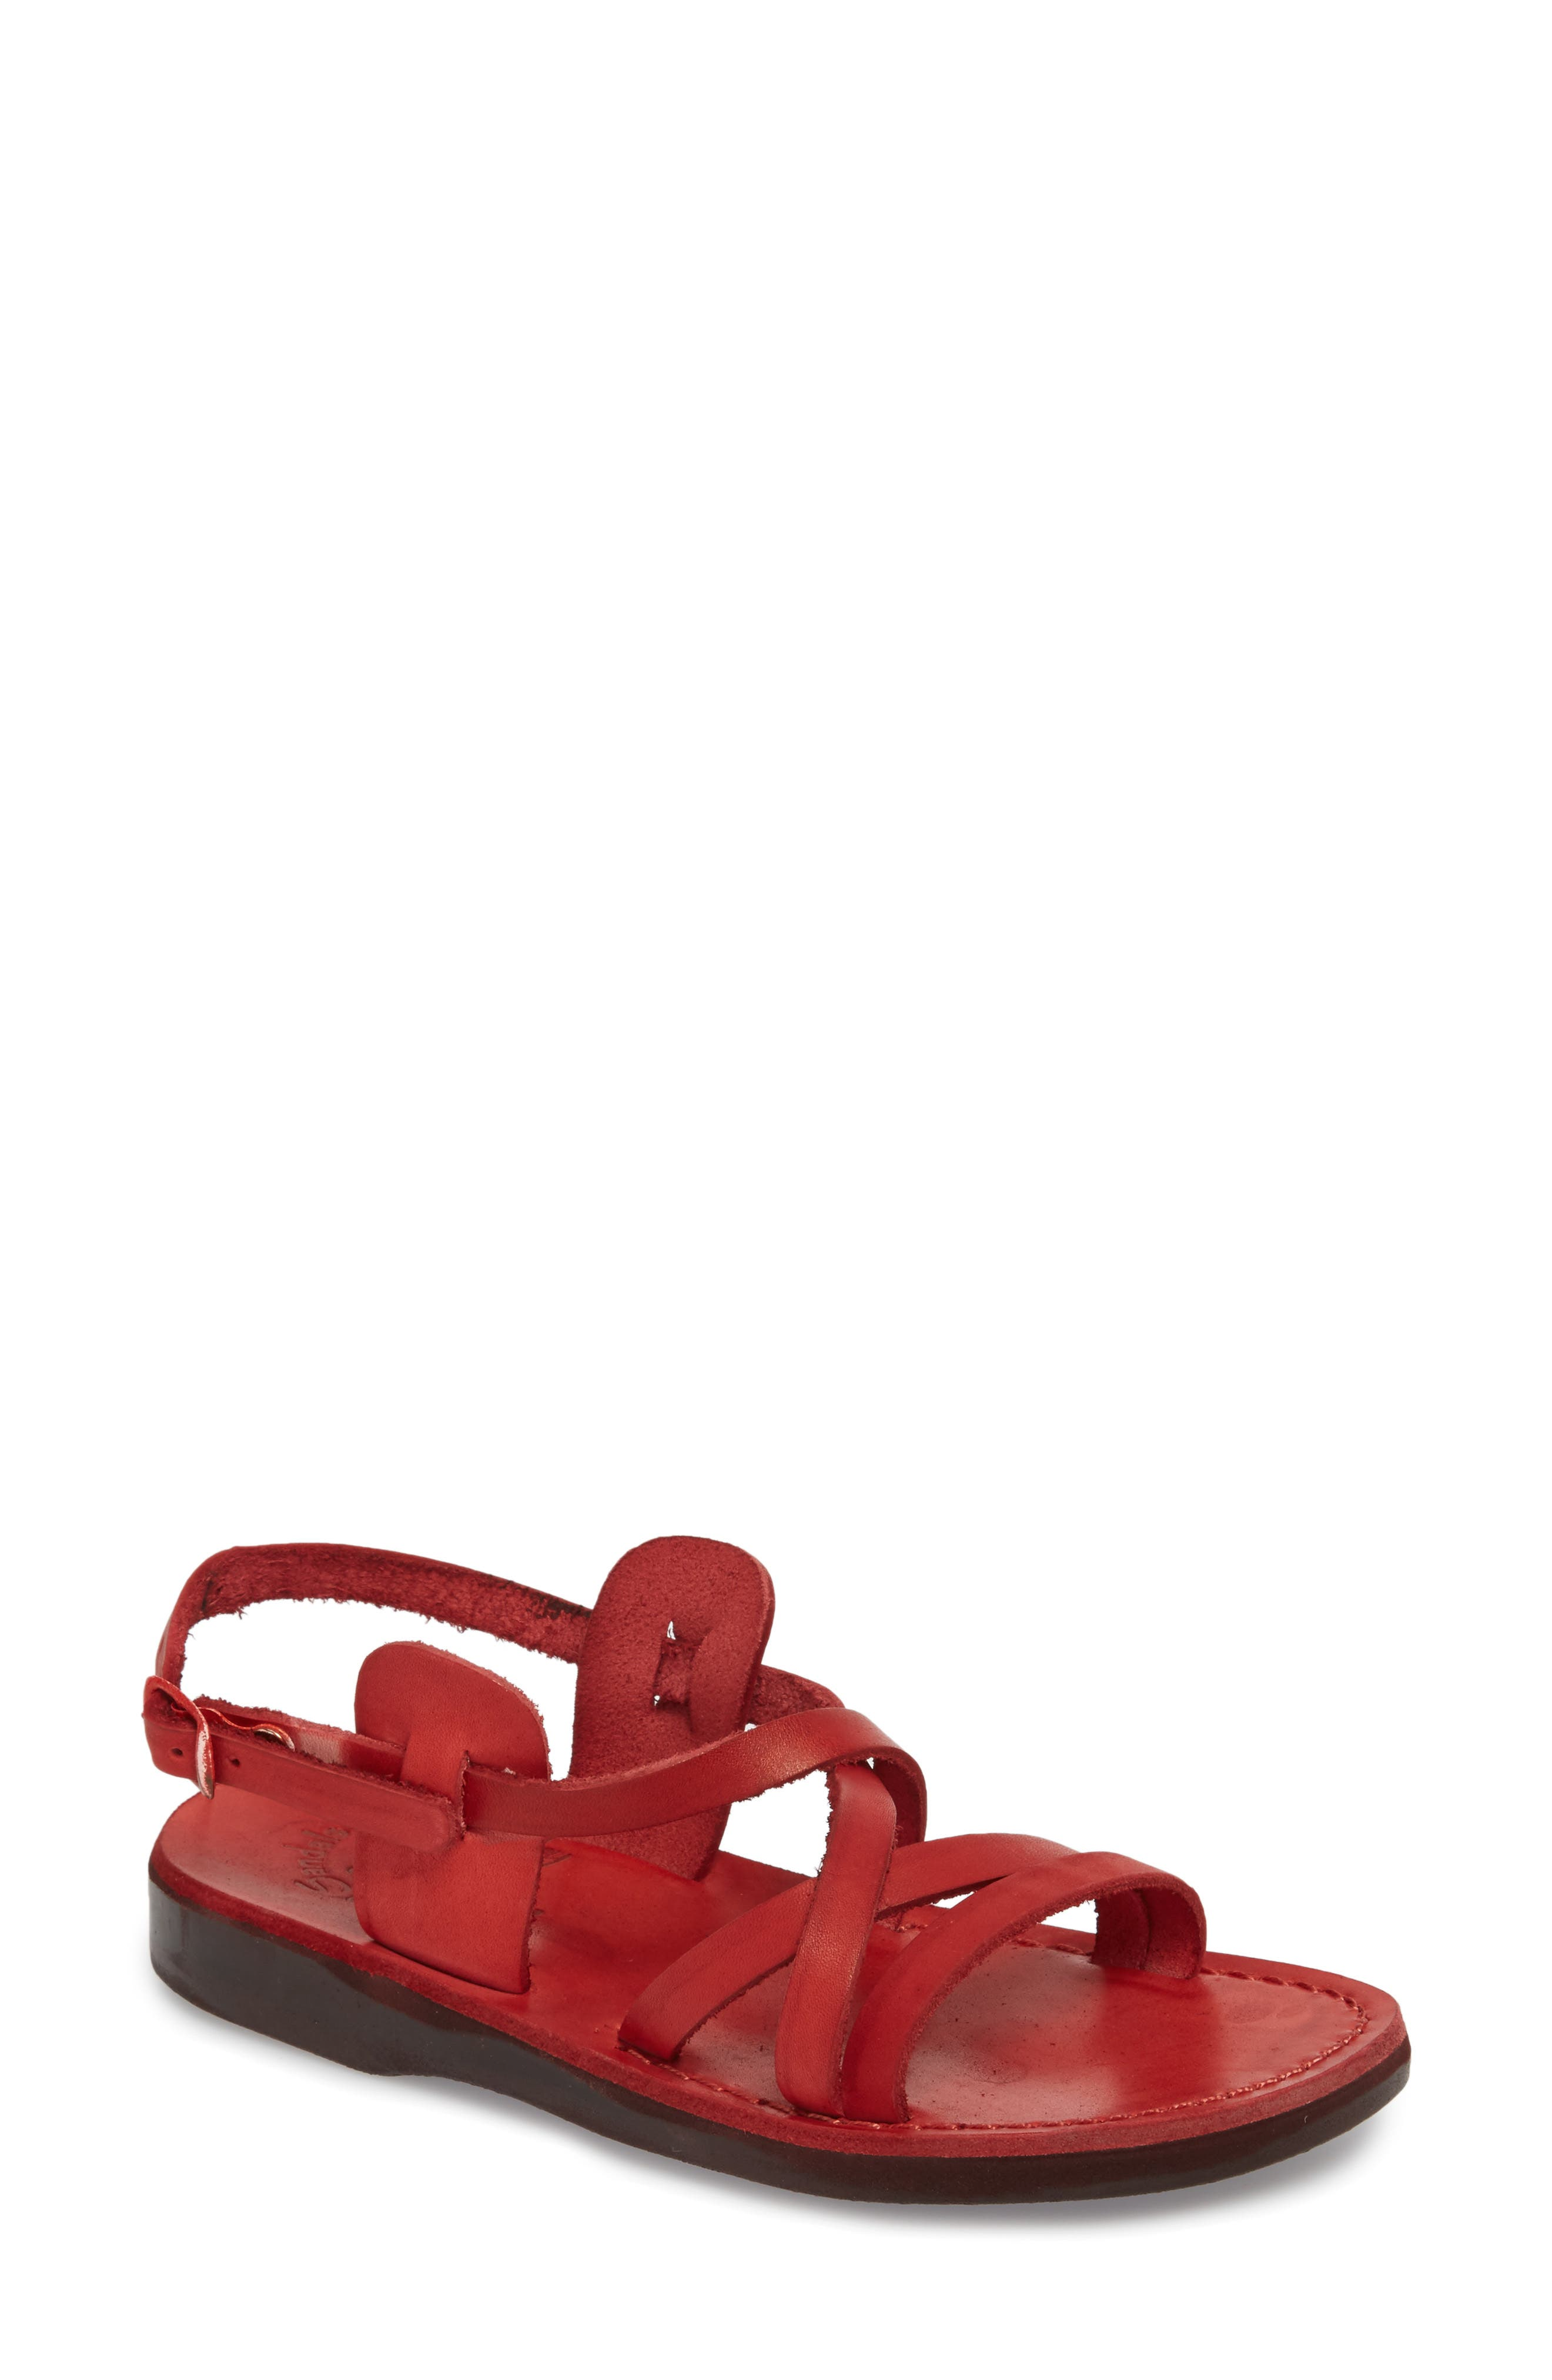 Tzippora Slingback Sandal,                         Main,                         color, Red Leather